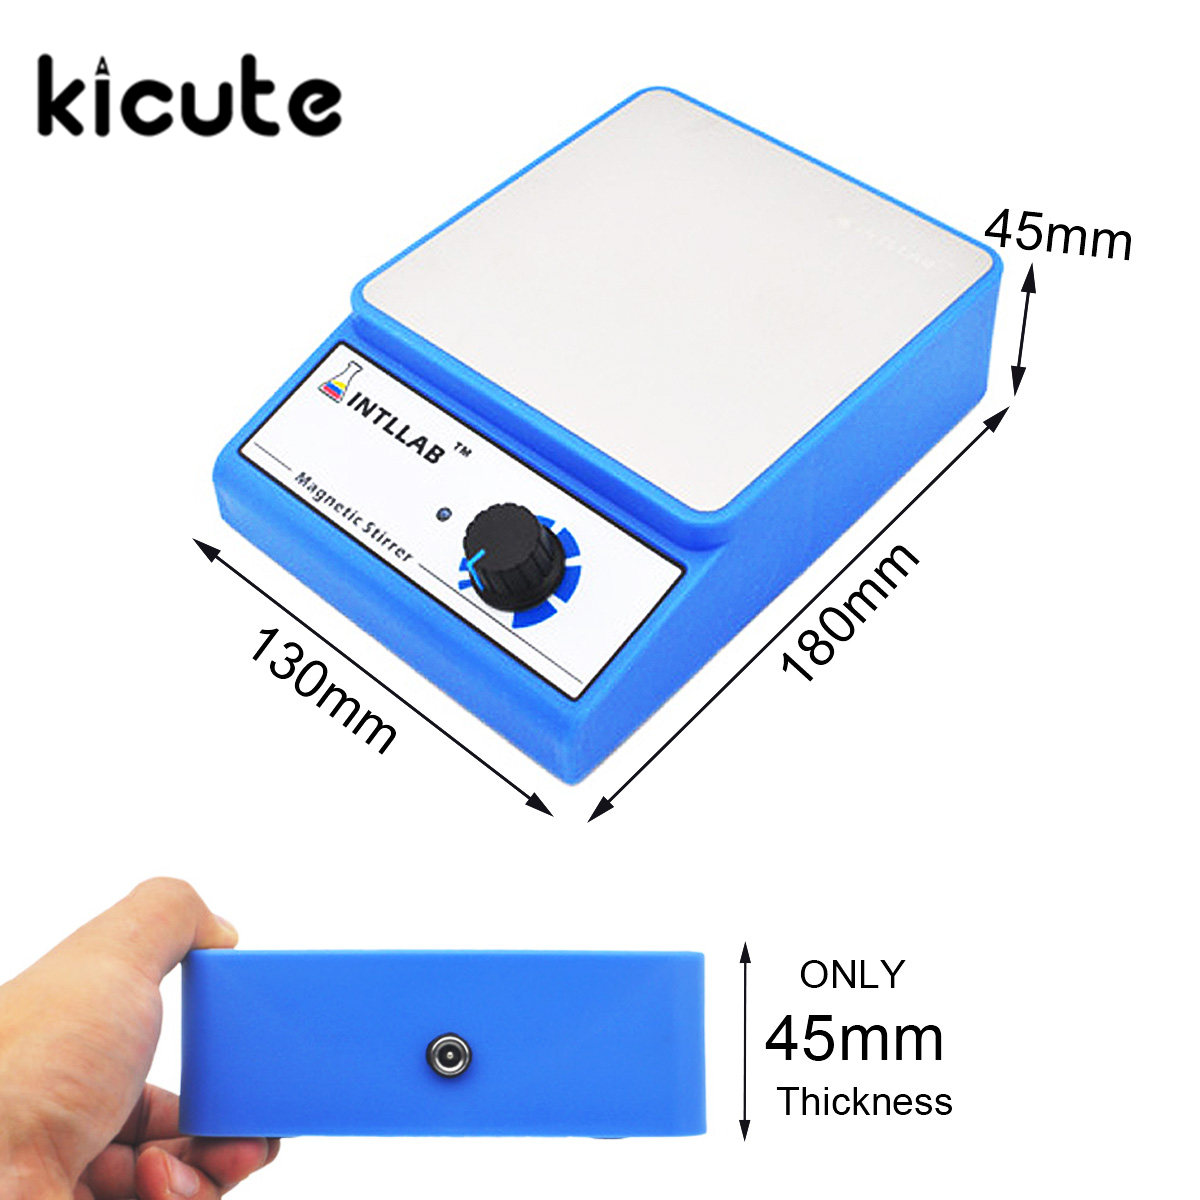 KiCute New Laboratory Chemistry Magnetic Stirrer Magnetic Stirrer Home Laboratory Magnetic Mixer Stirrers Apparatus AC100-240V brand new flatspin small magnetic stirrer thin laboratory mixer adjustable speed 15 1500 rpm